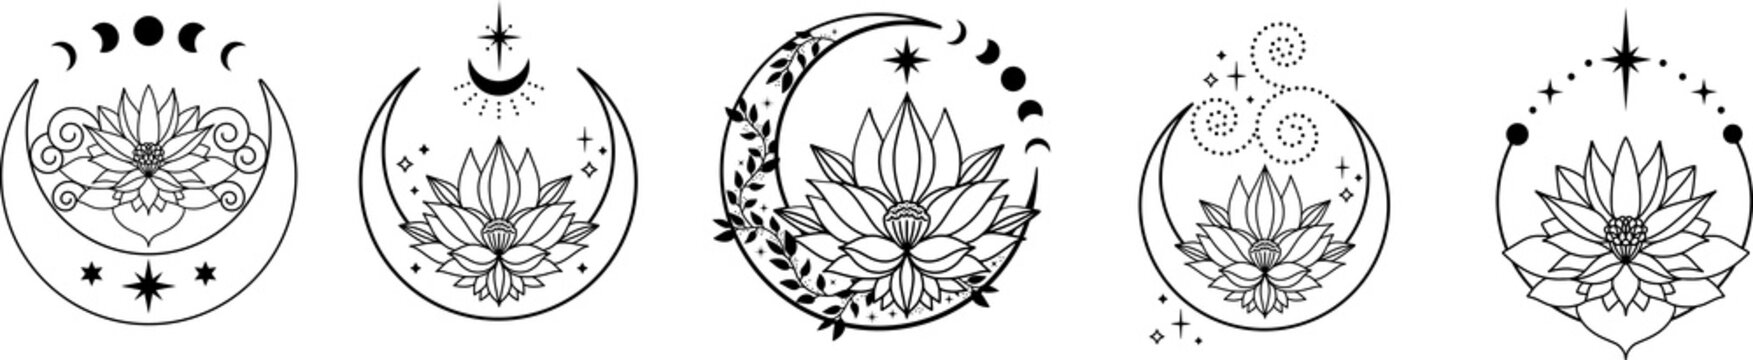 Set of Crescent moons with lotus flower, Flower Moon, Floral magic celestial clipart, Blooming Lotus Moon with Stars, Moon Phases